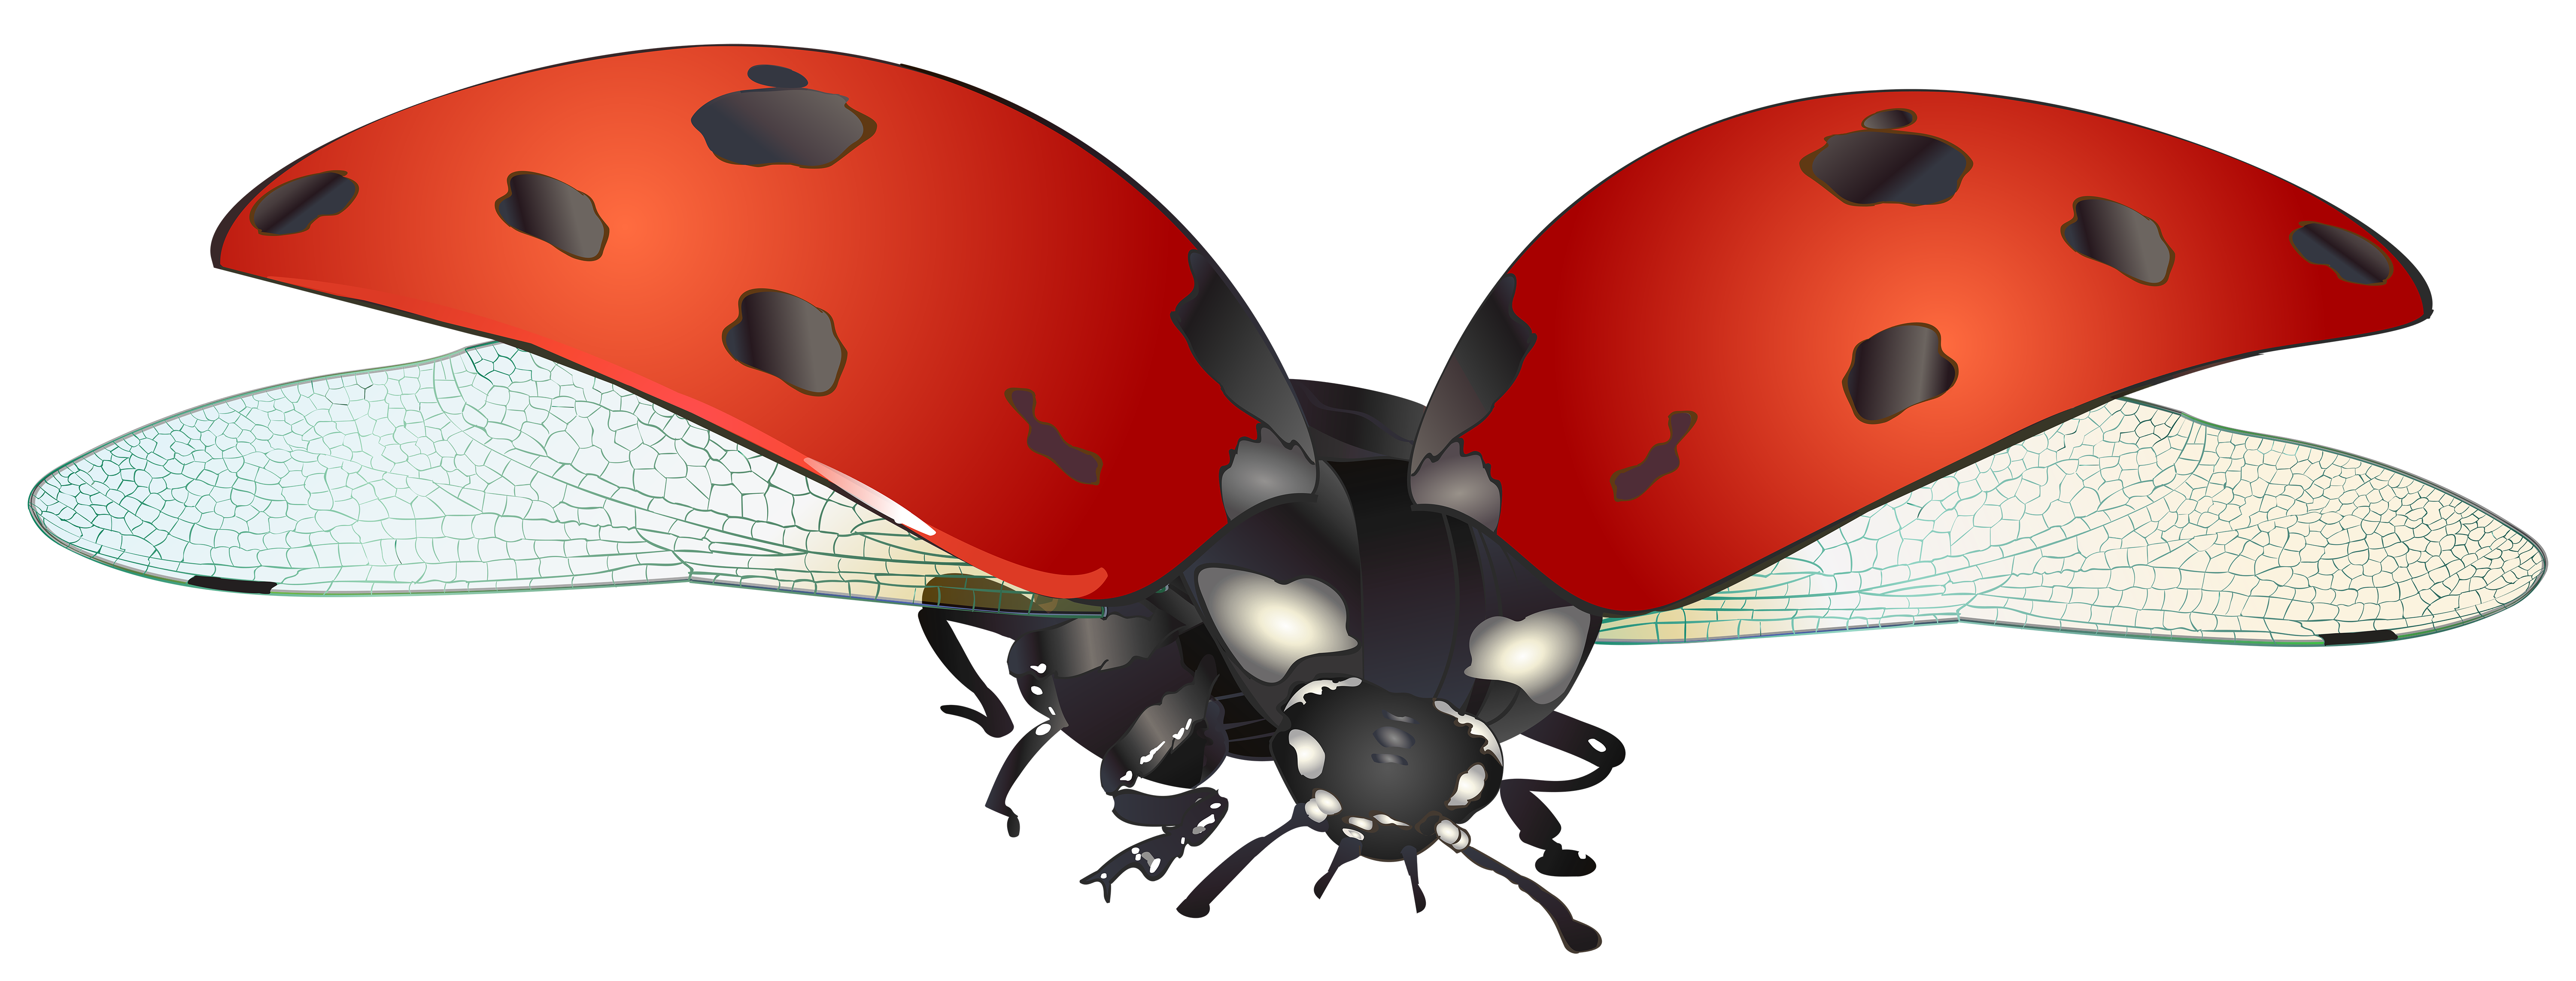 Ladybug flying clipart banner library library Flying Ladybug PNG Clip Art Image | Gallery Yopriceville ... banner library library